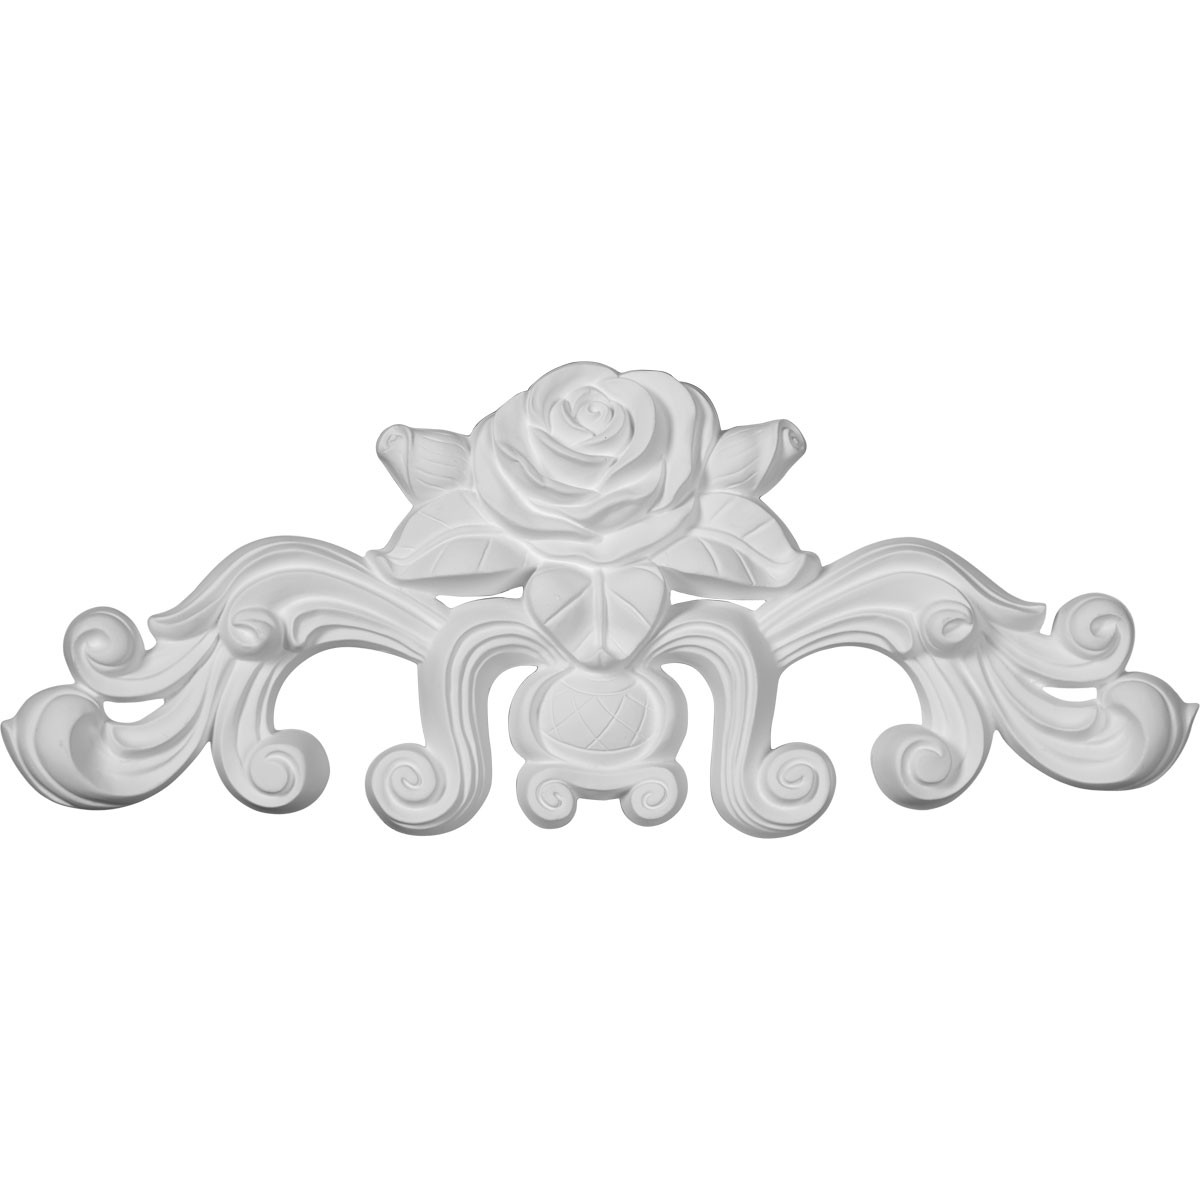 """EM-ONL13X05X01NA - 13 3/4""""W  x 5 1/2""""H x 1""""P Nadia Decorative Rose Center with Scrolls Onlay"""